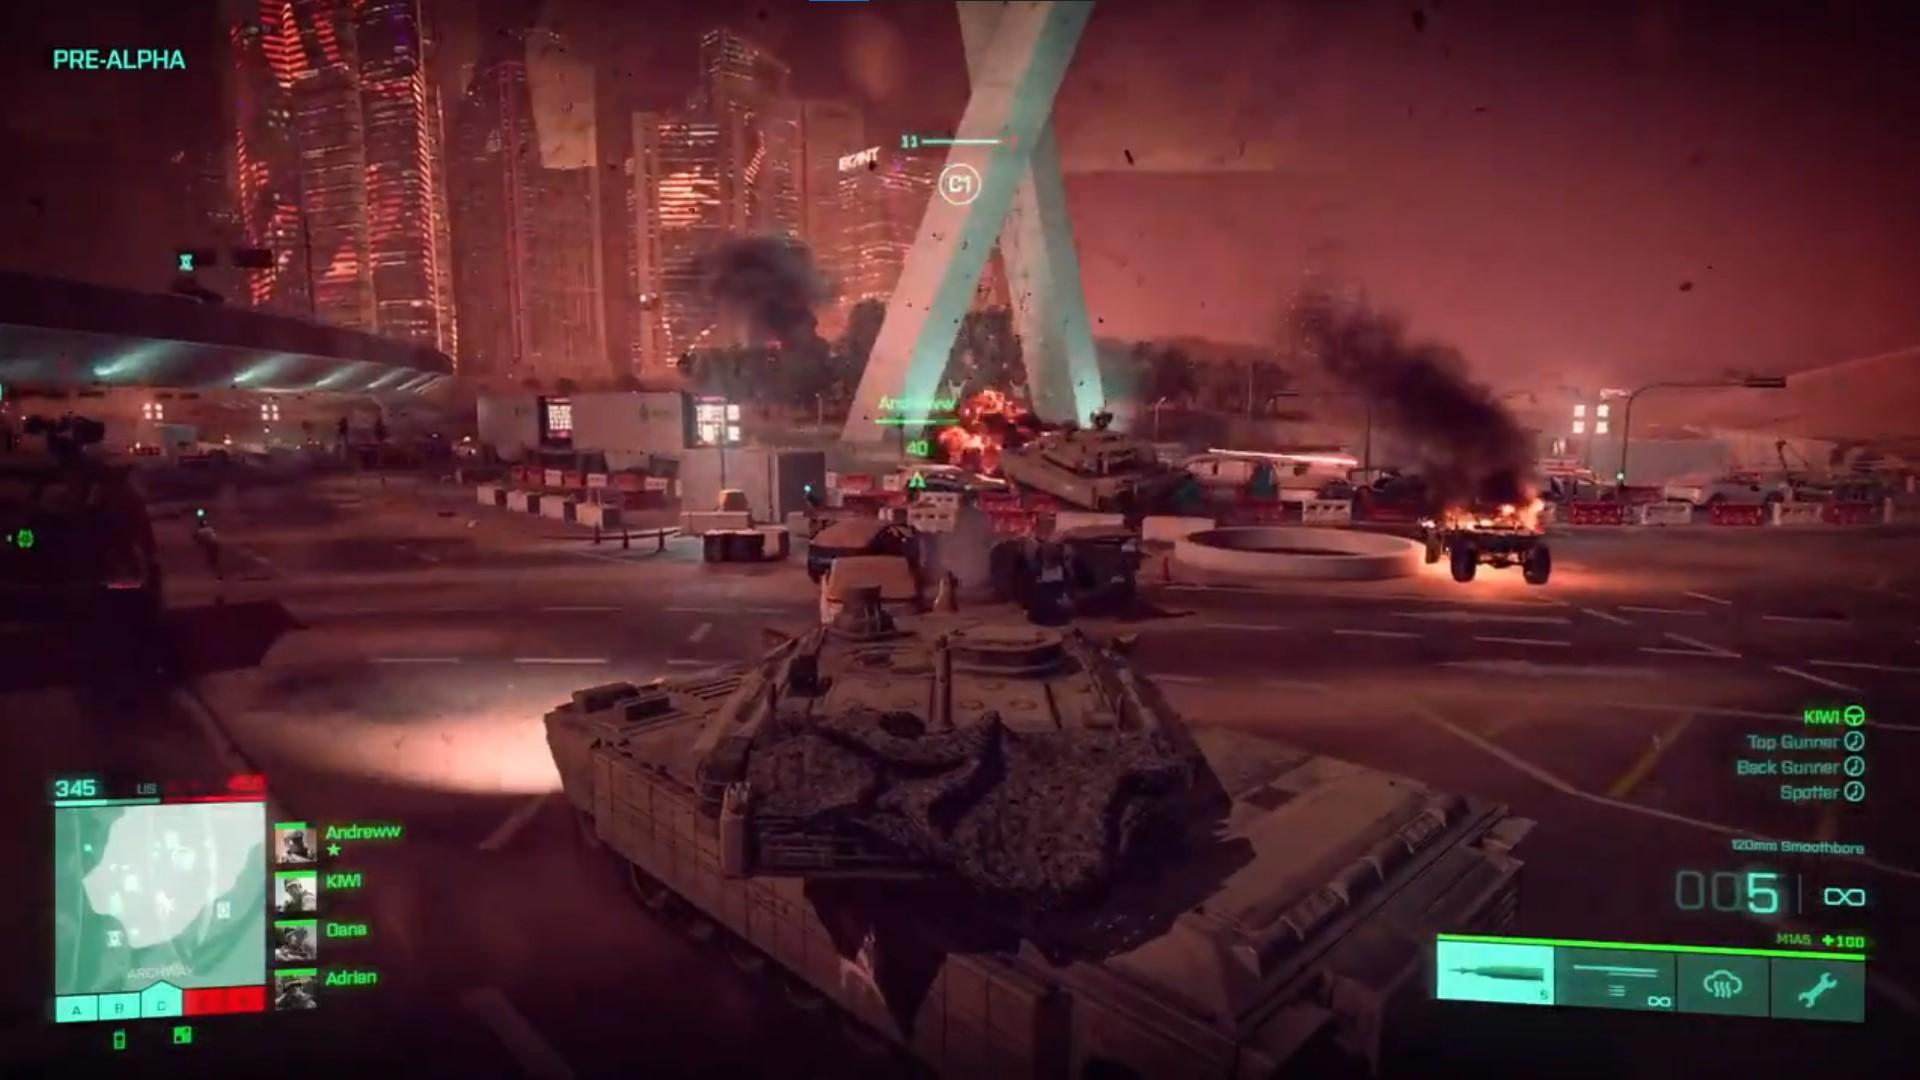 Battlefield 2042 is bringing some changes to vehicles to accommodate the larger map sizes